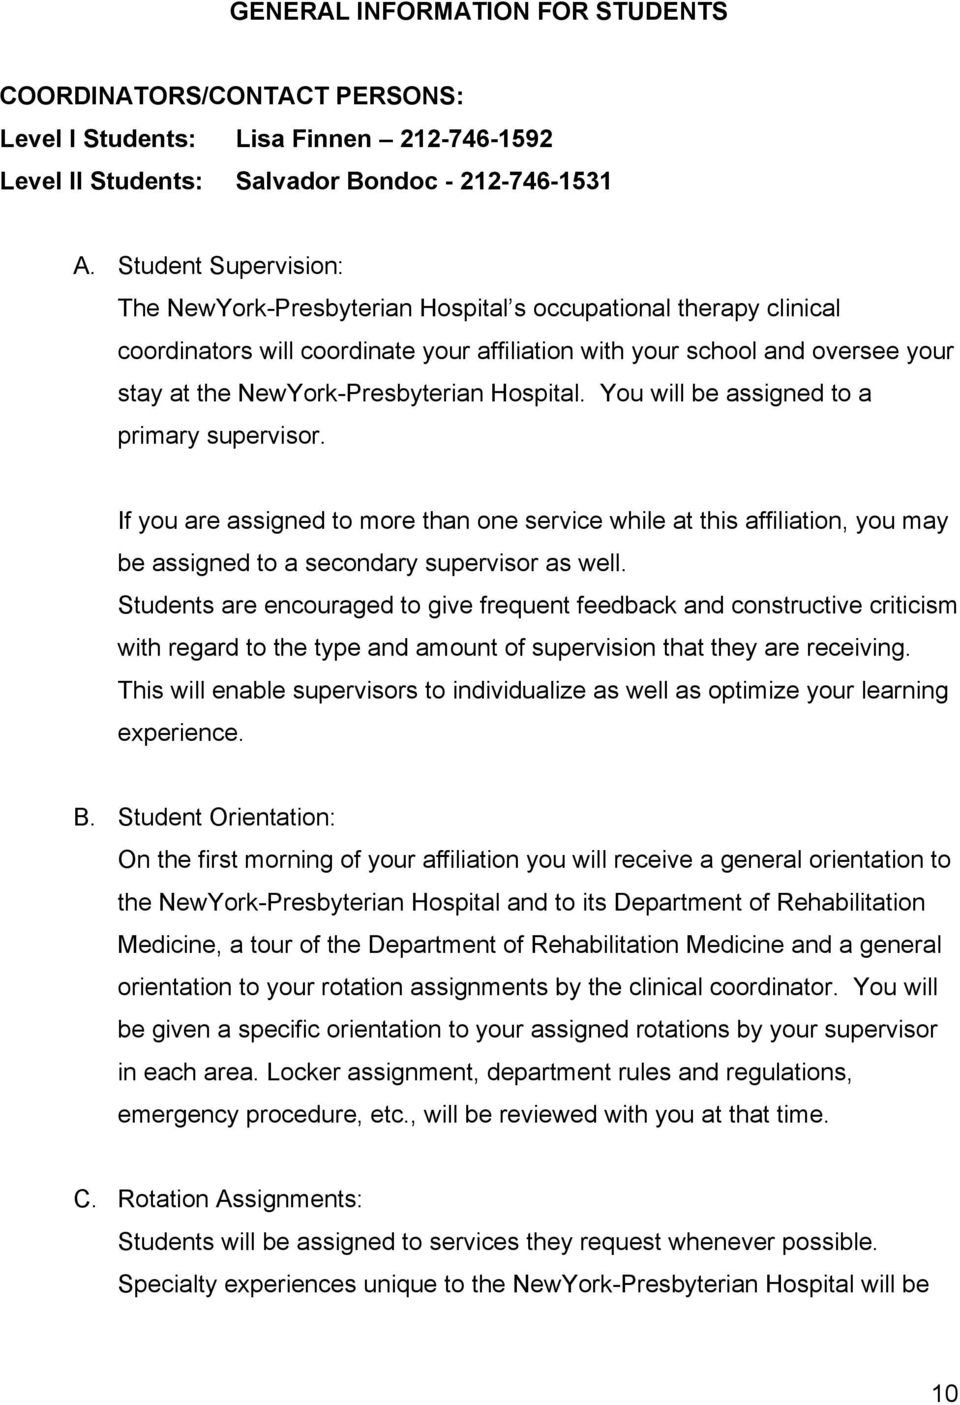 Hospital. You will be assigned to a primary supervisor. If you are assigned to more than one service while at this affiliation, you may be assigned to a secondary supervisor as well.